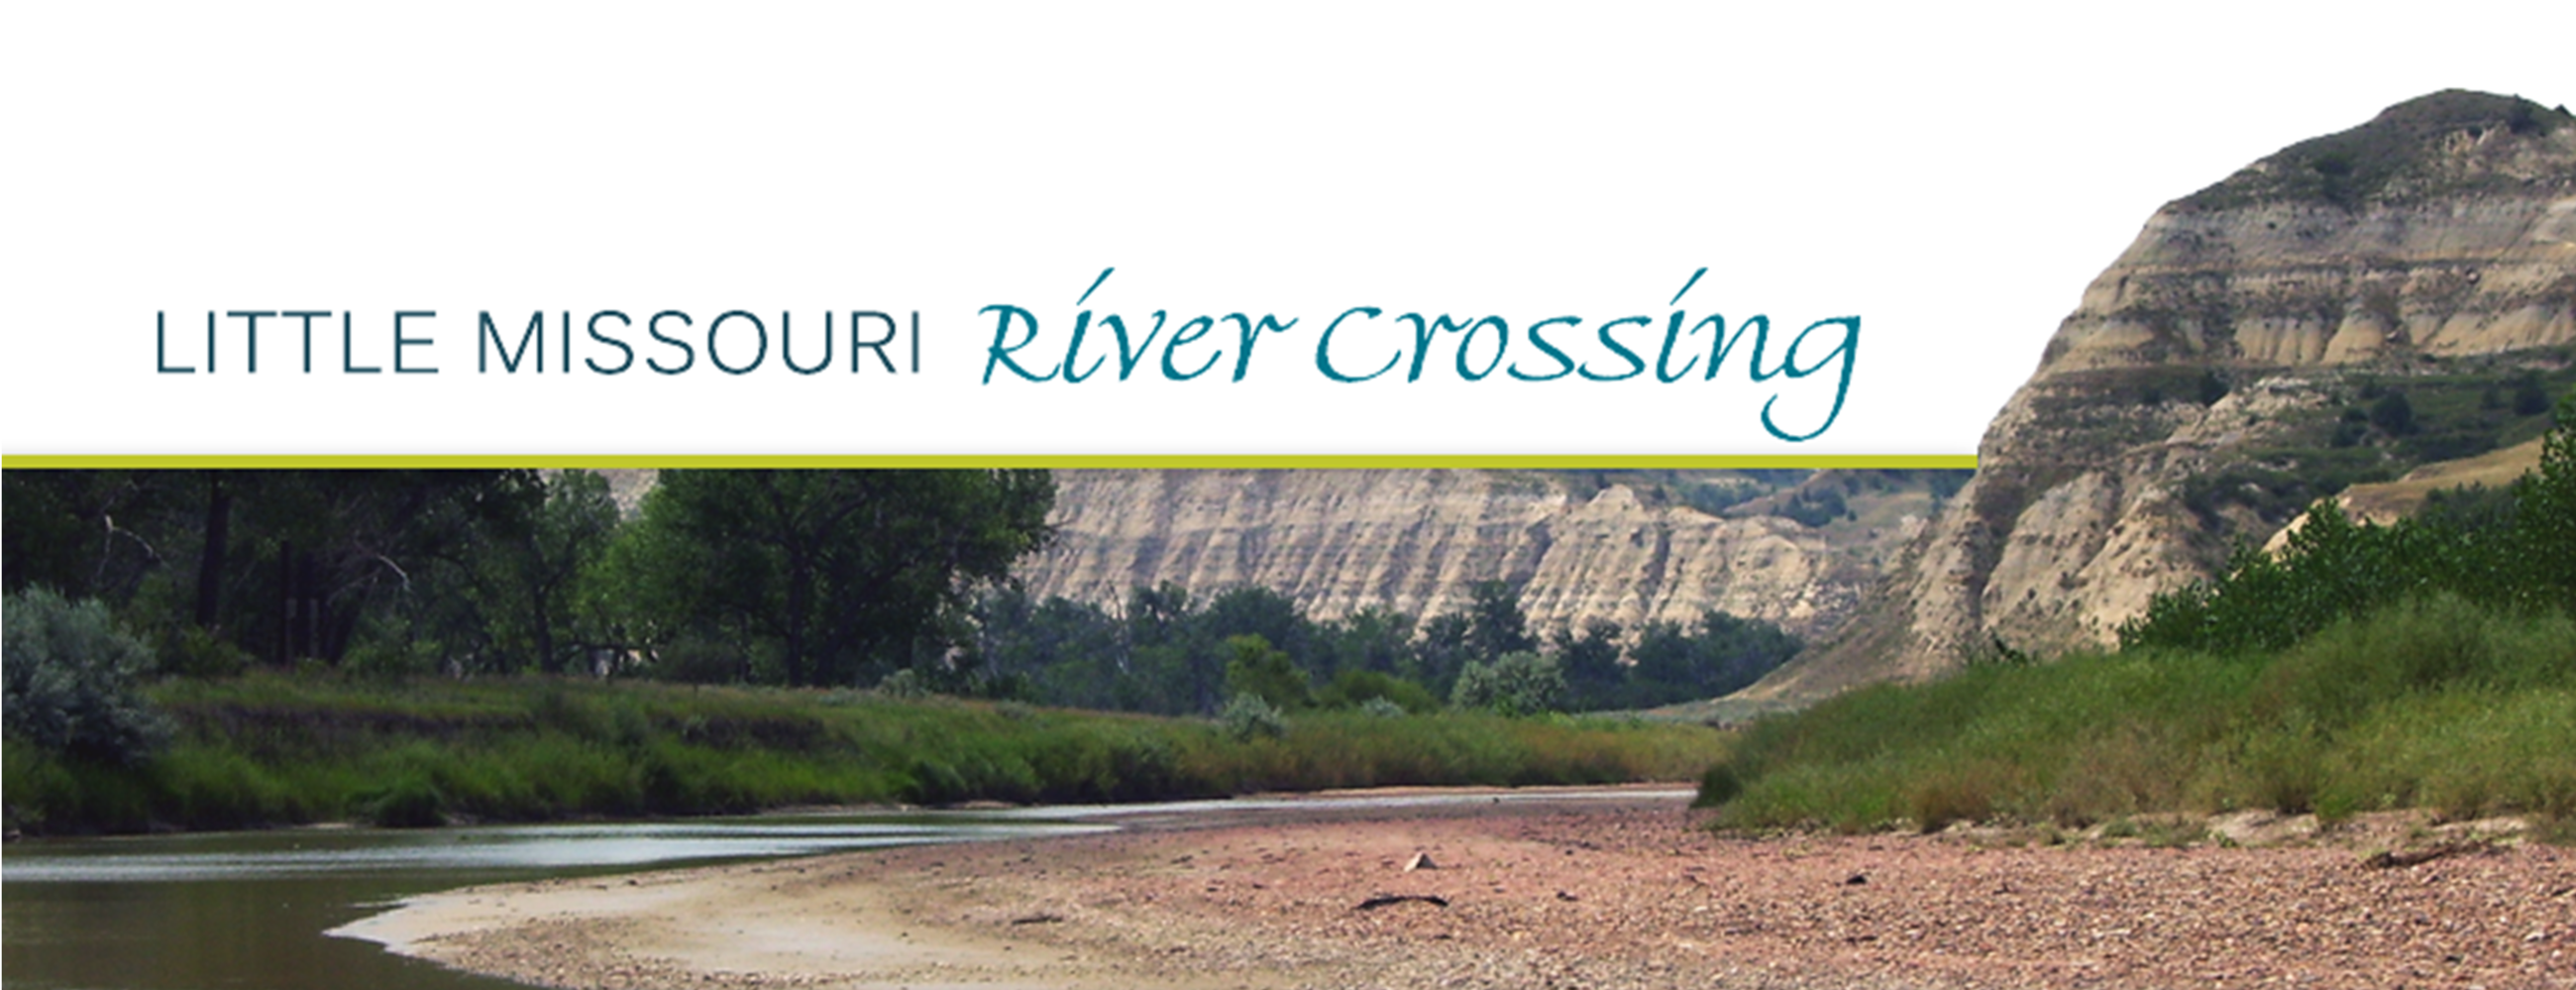 LittleMissouriRiver_cover_photo